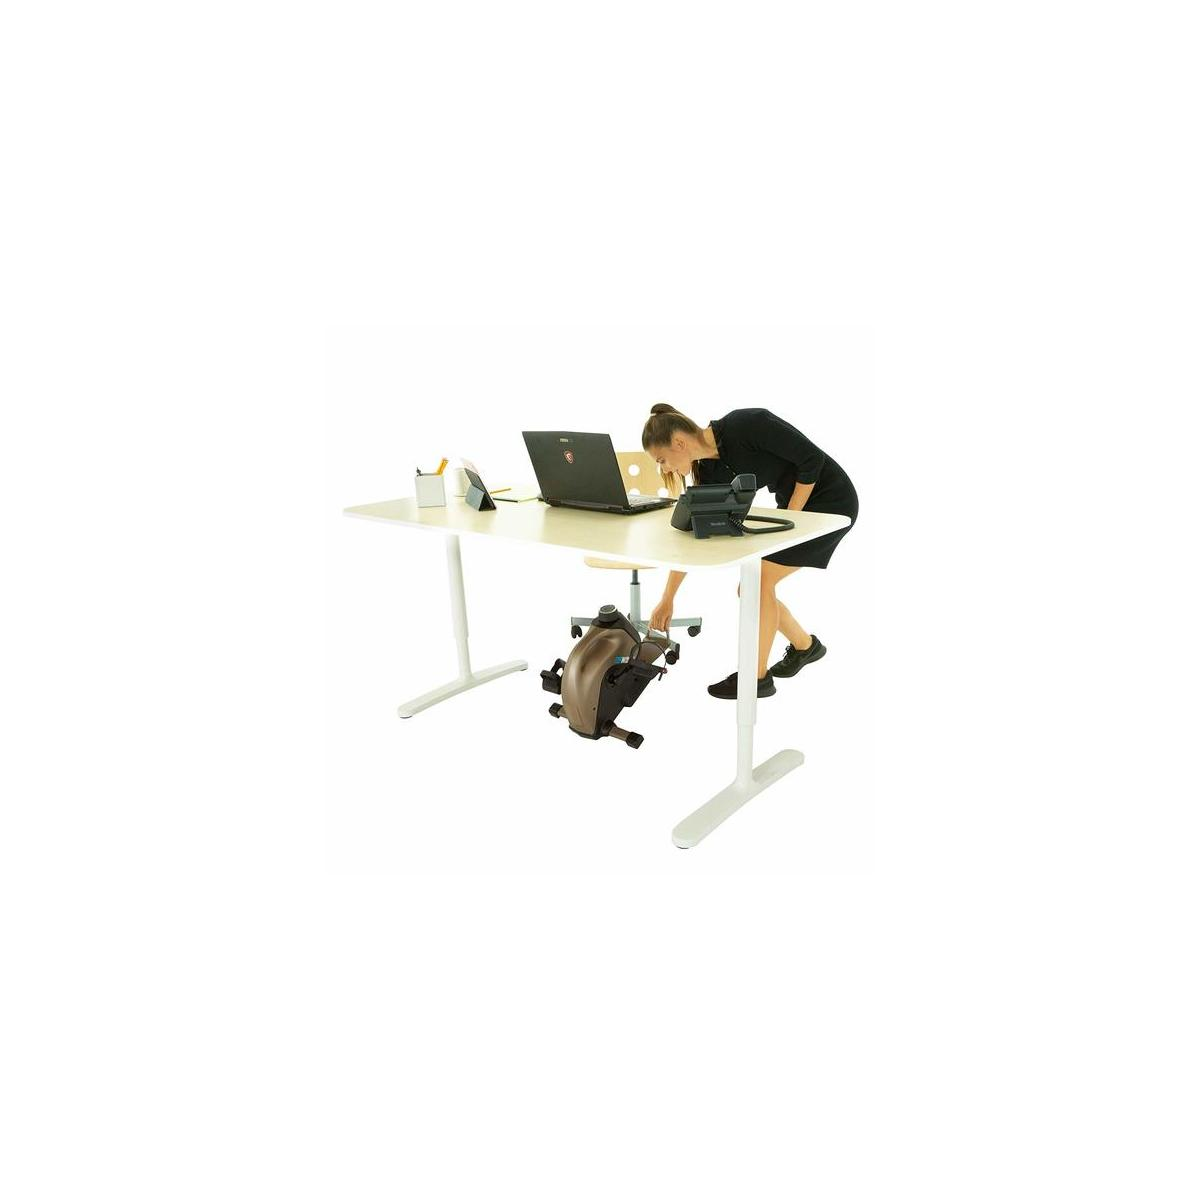 Exerpeutic 900 Bluetooth Under Desk Exercise Bike with Extendable Chair Hook for All User Height and Free APP